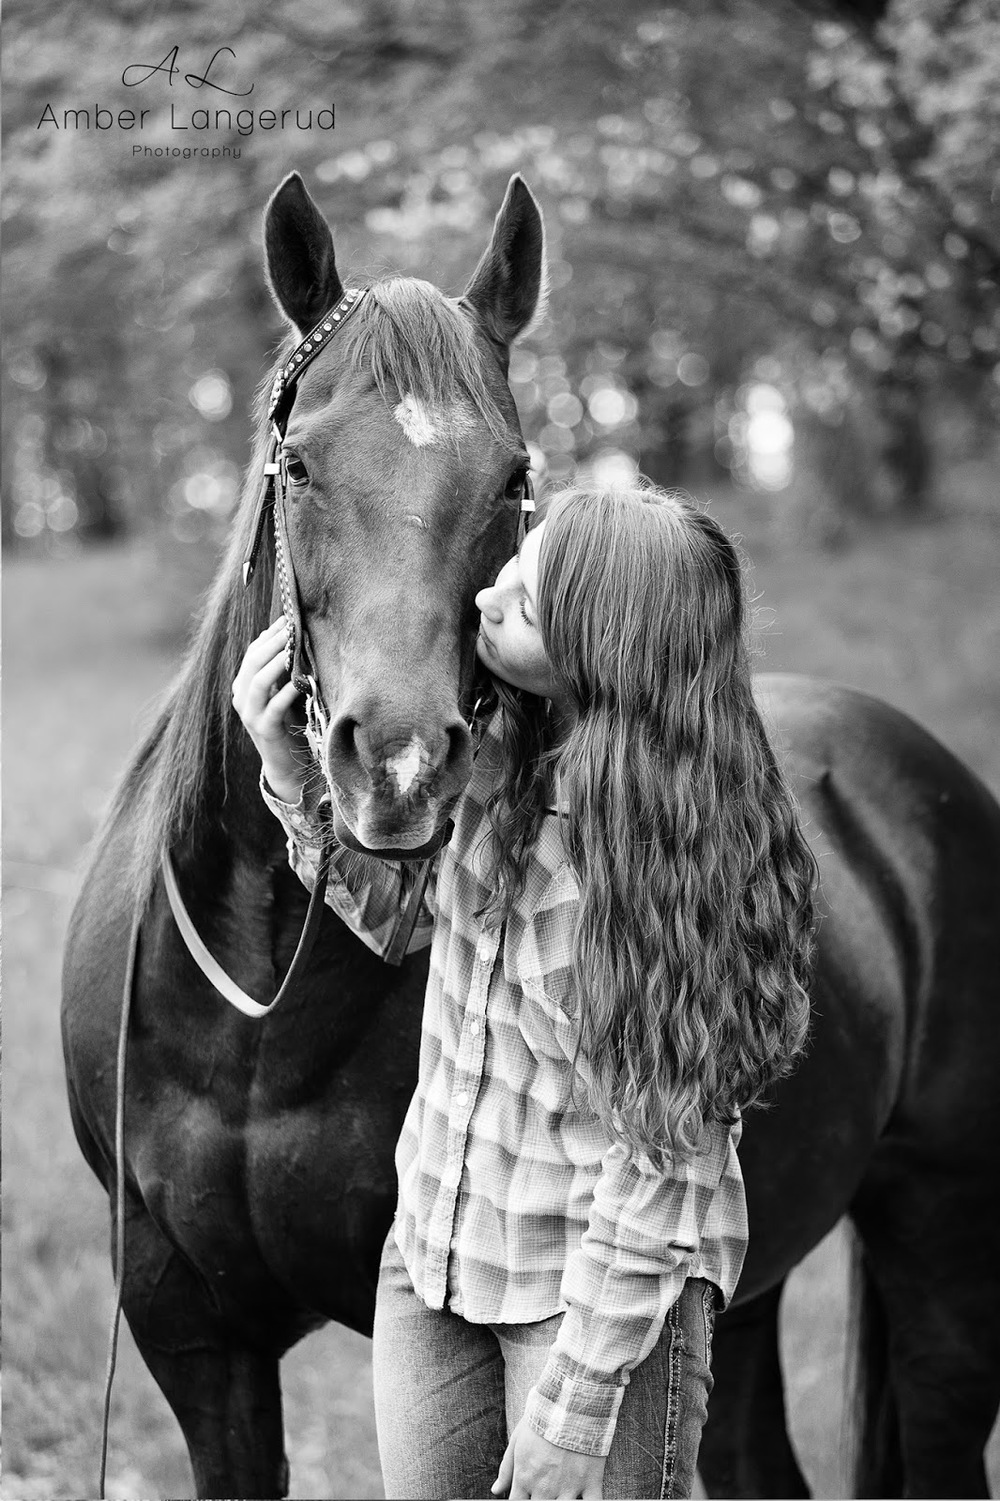 A Girl & Her Horse Outdoor High School Senior Portraits | Detroit Lakes, Fargo/Moorhead Area Photographer | Amber Langerud Photography